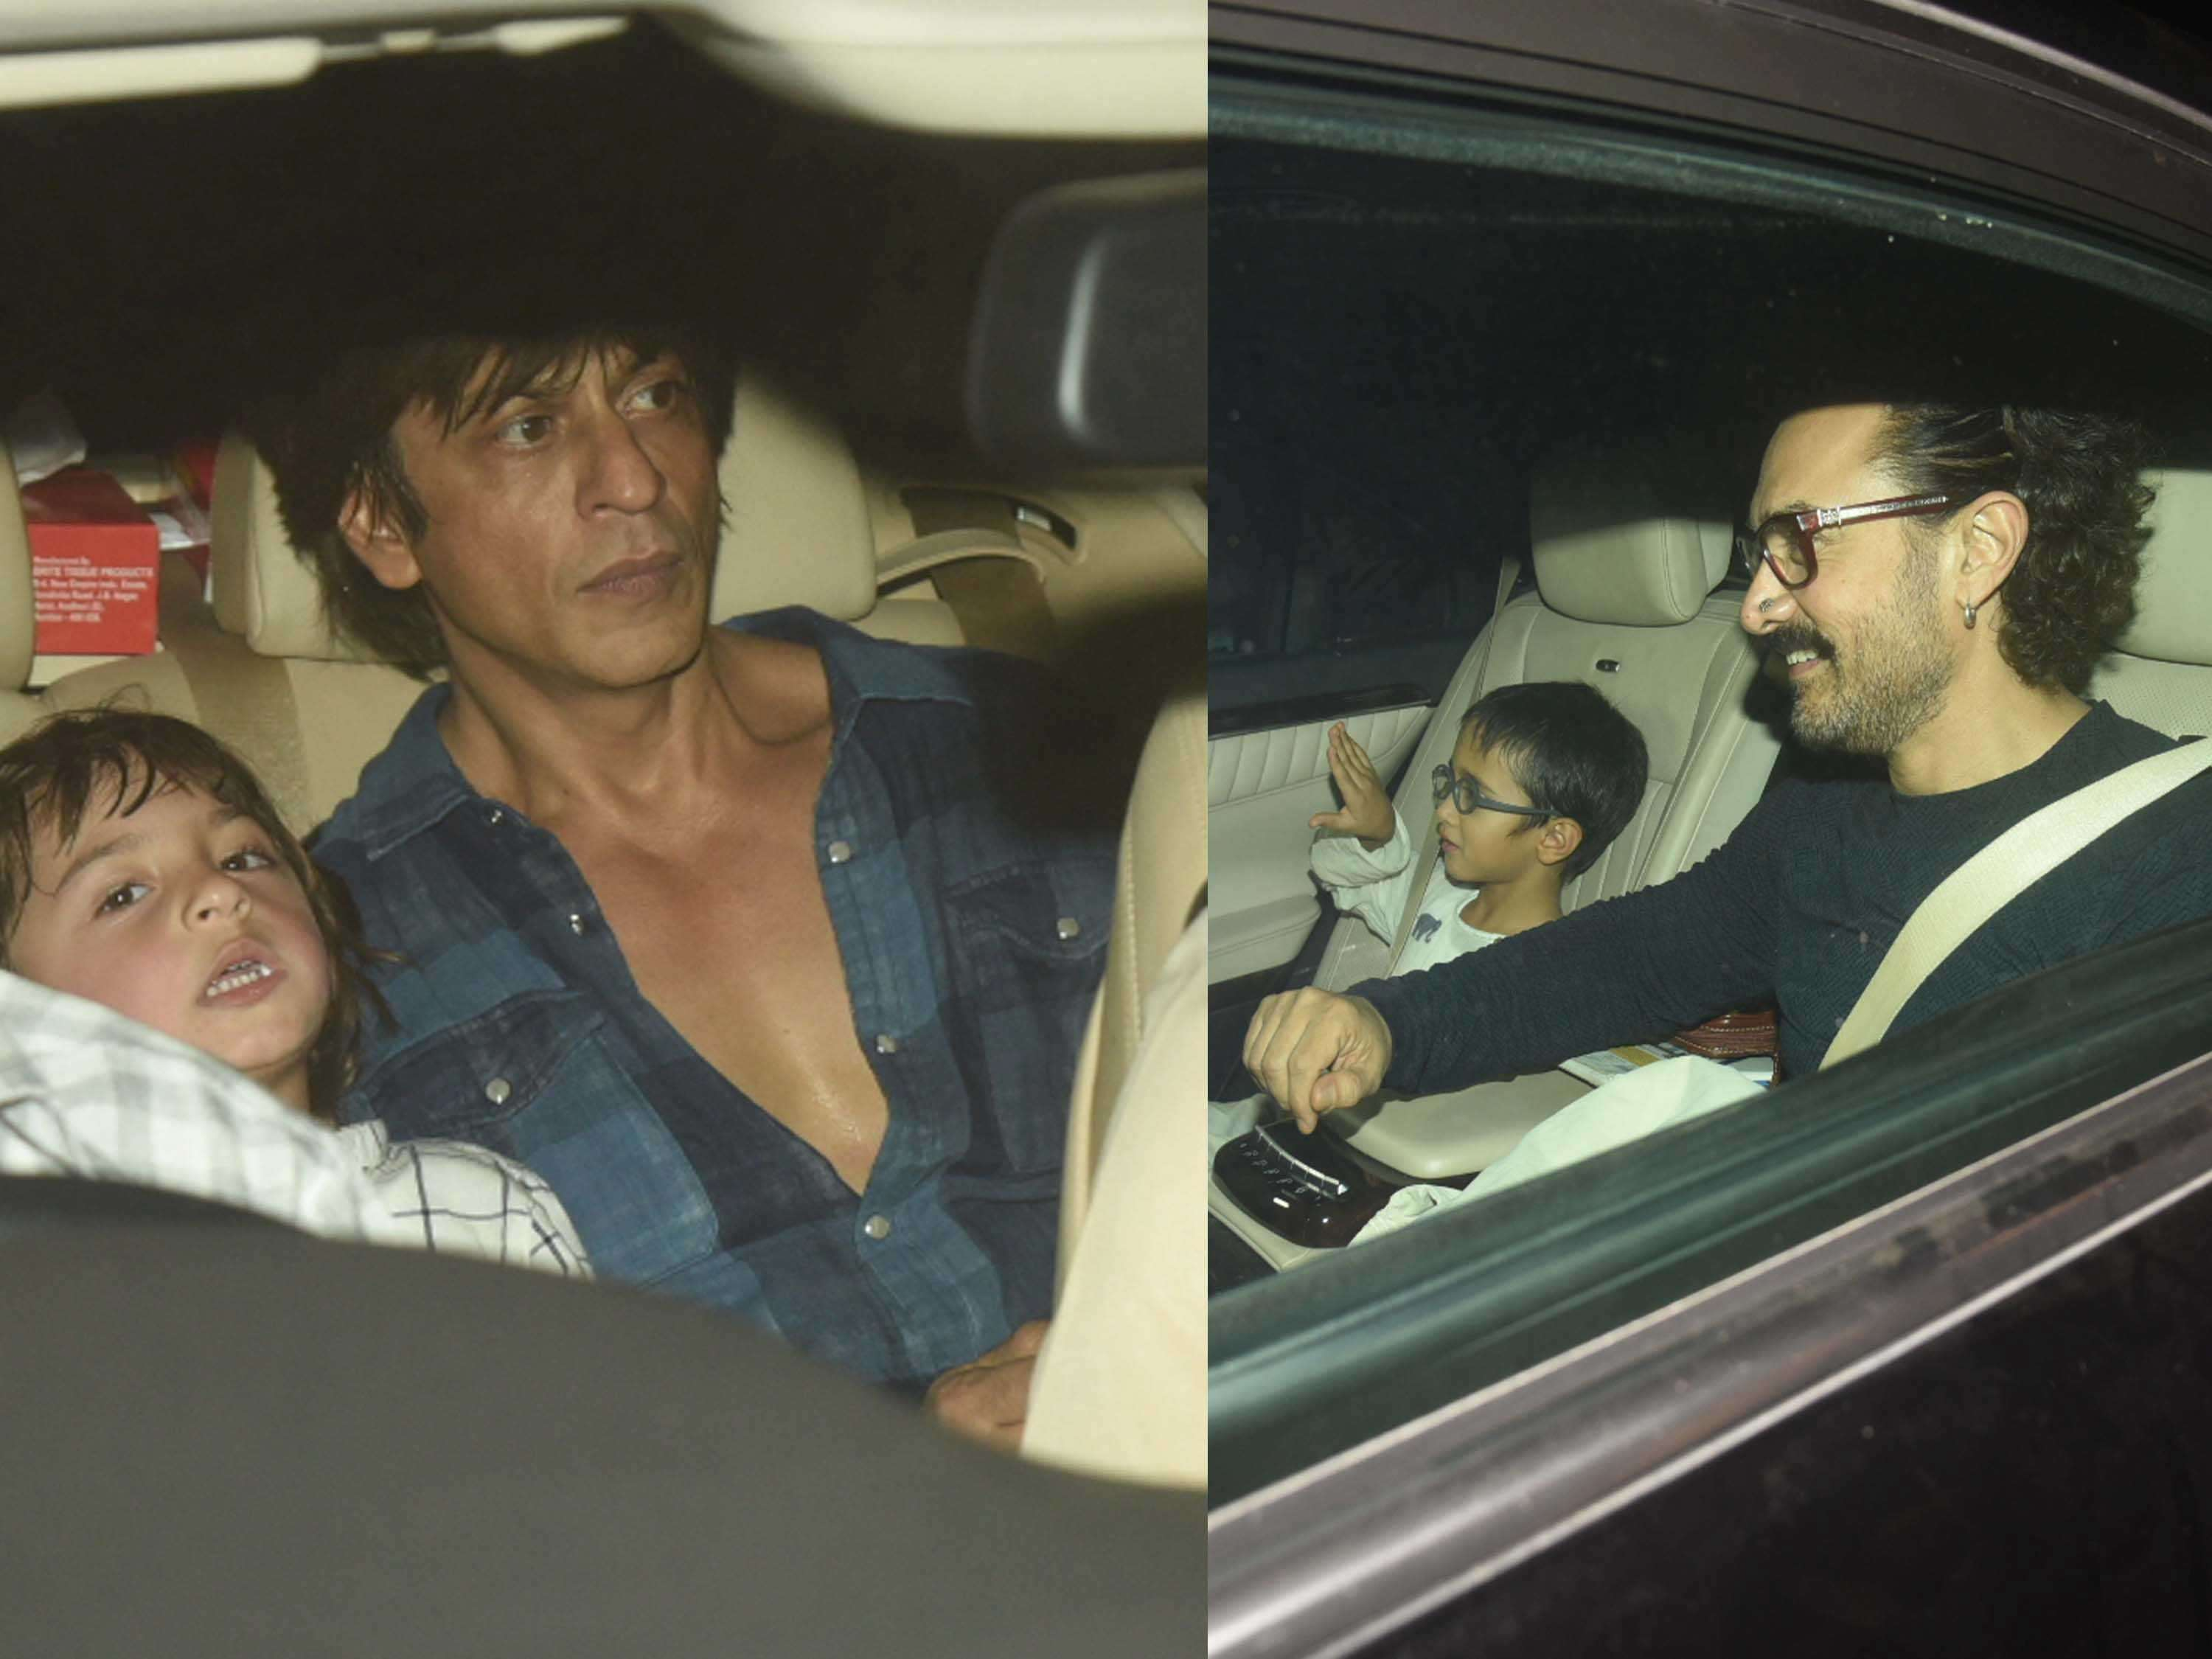 AbRam with Shah Rukh Khan and Azad Rao with Aamir Khan attend Aaradhya Bachchan's birthday party